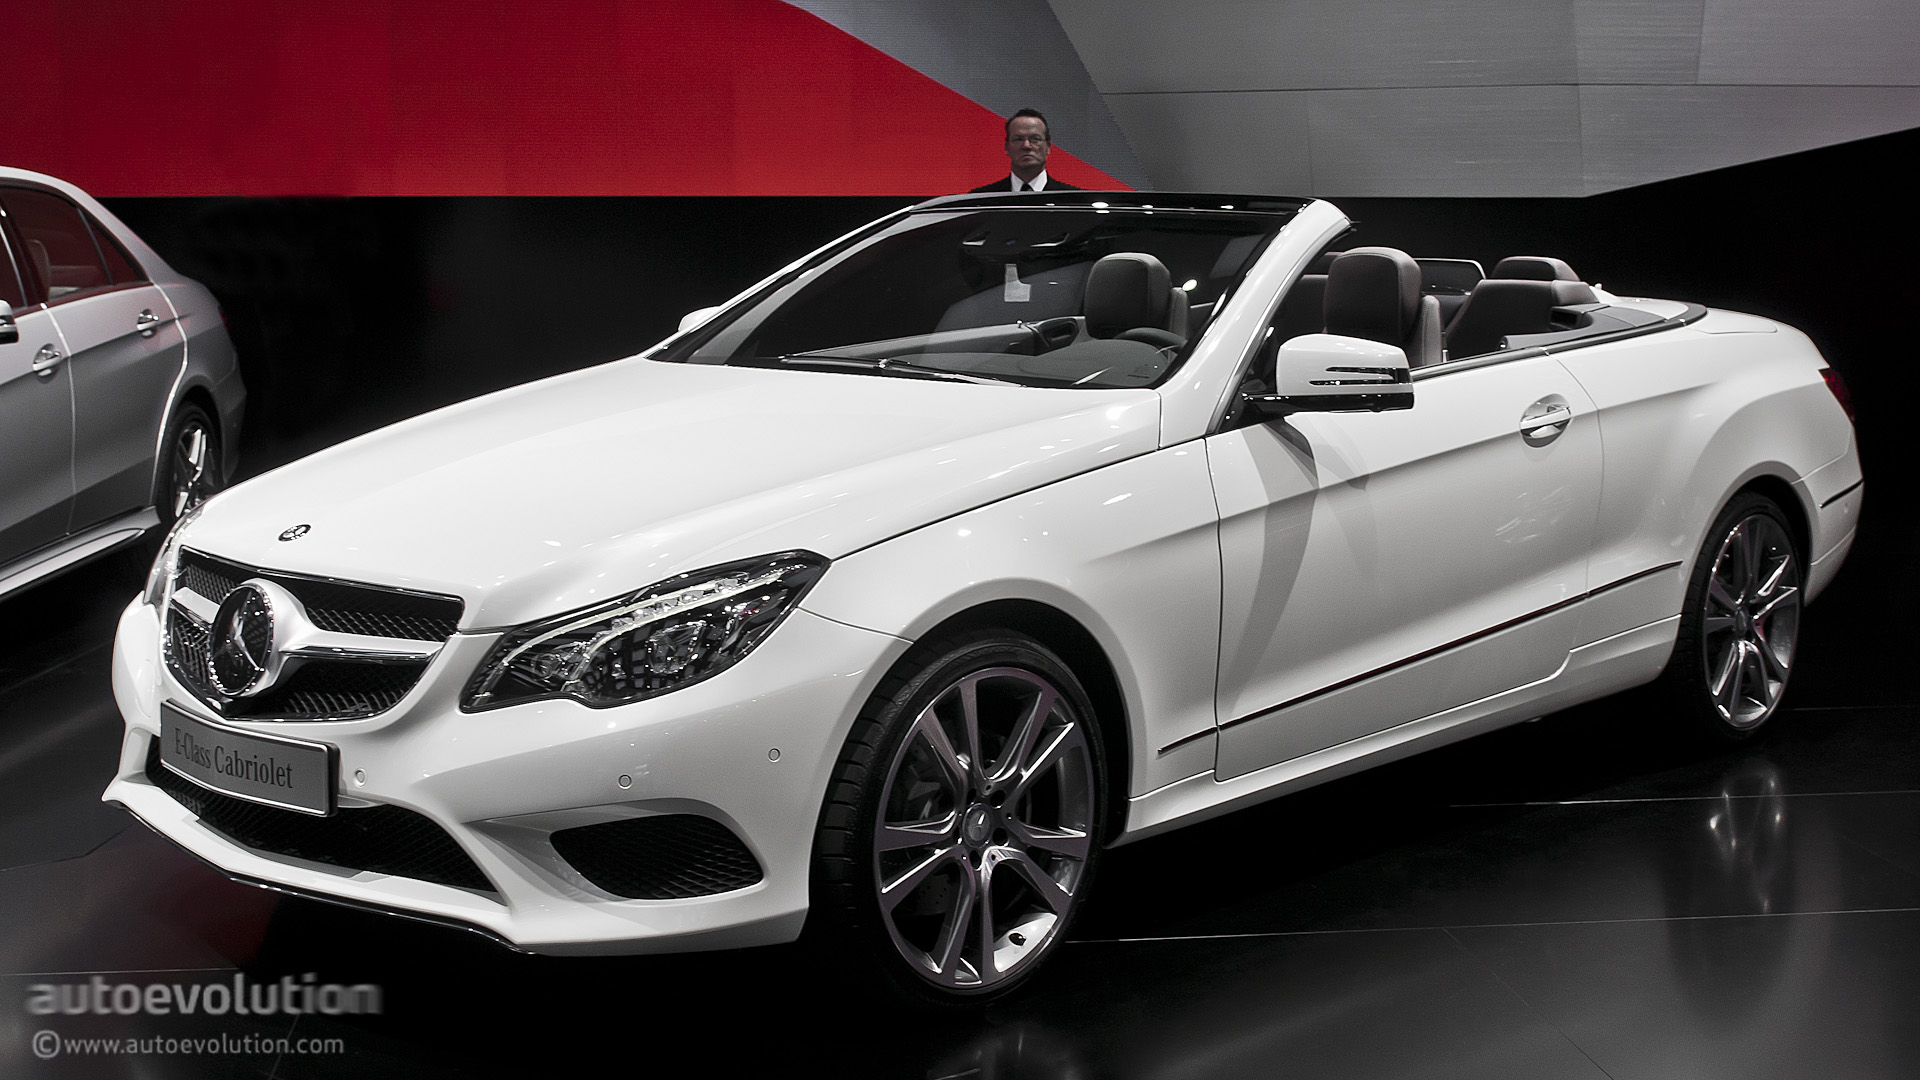 2013 naias mercedes benz e class cabriolet live photos. Black Bedroom Furniture Sets. Home Design Ideas